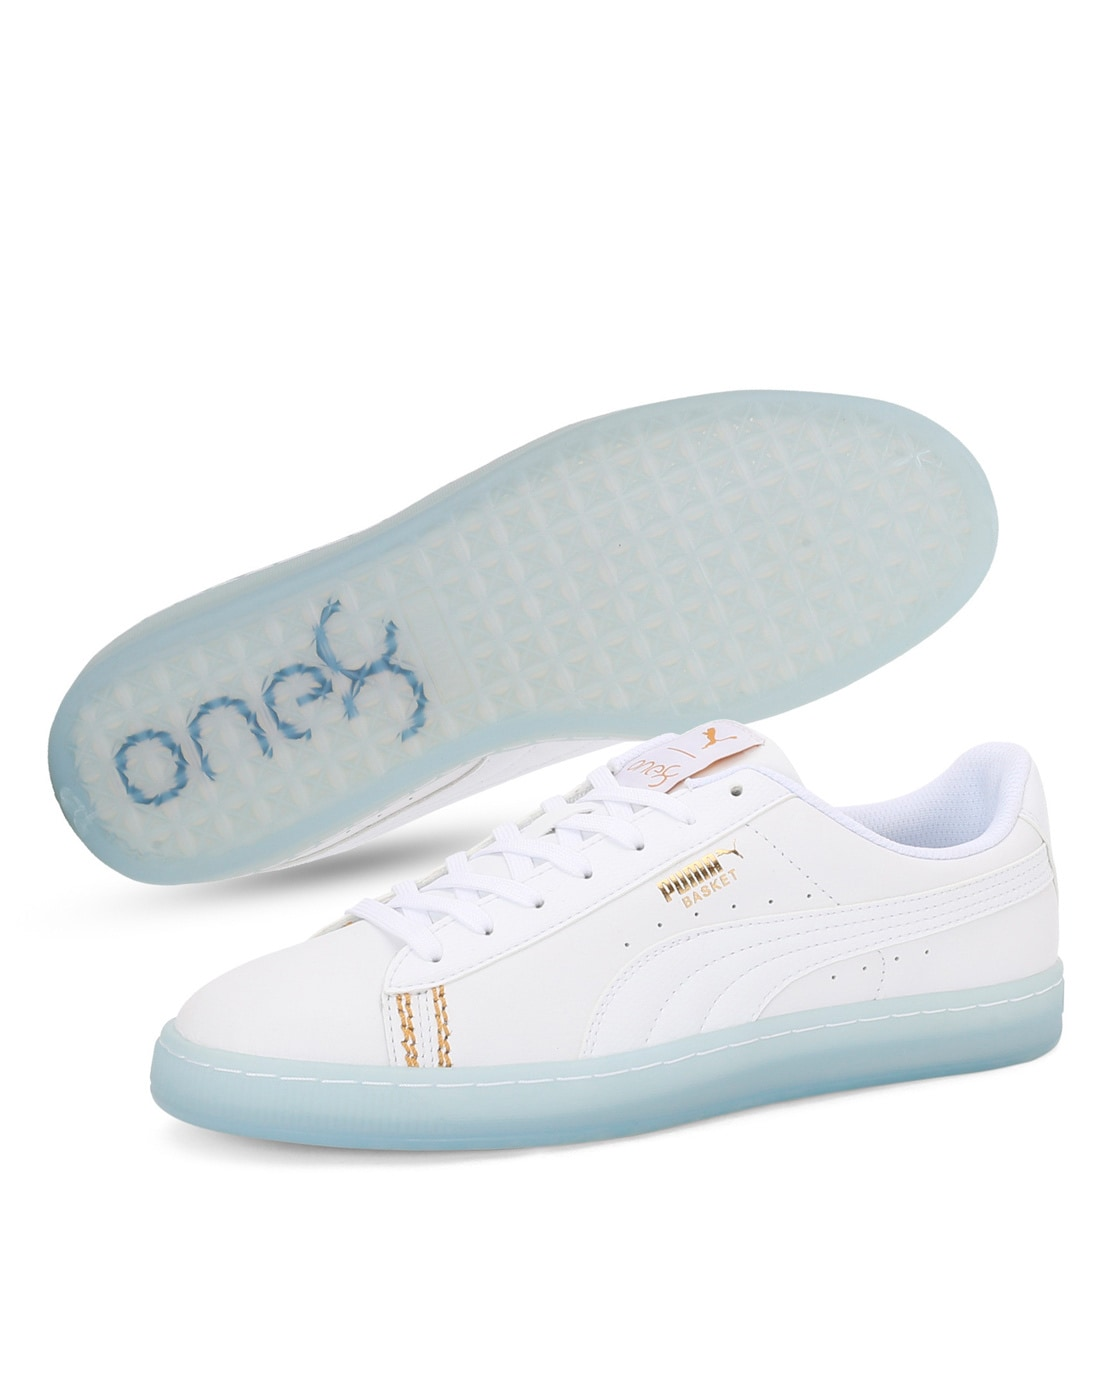 Textured Low Top Lace Up Casual Shoes